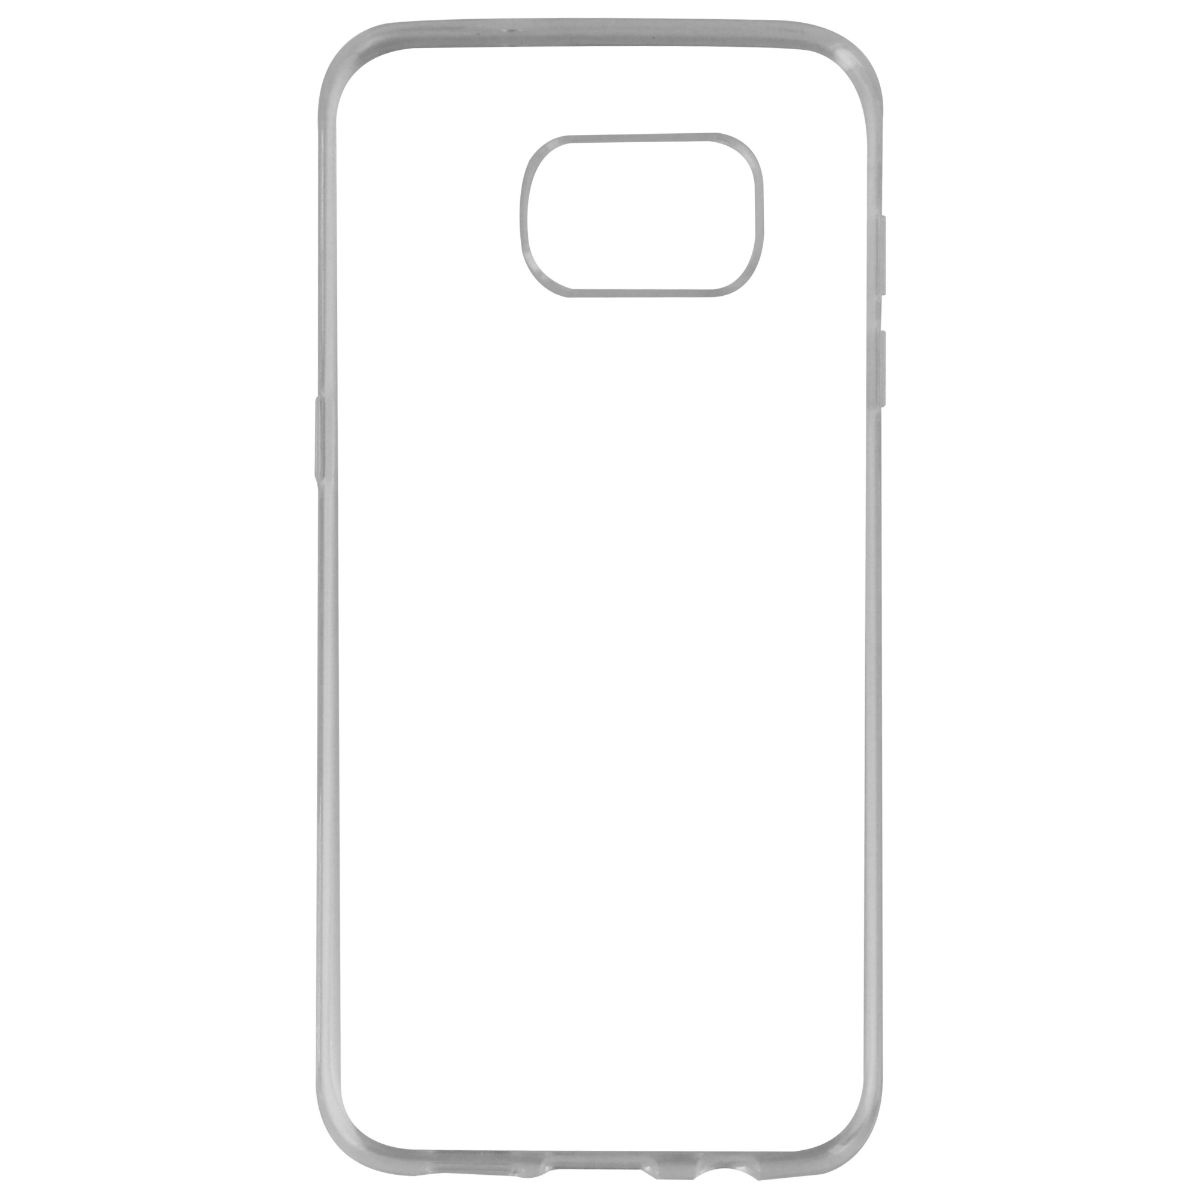 Random Order Protective Case for Samsung S7 Edge - Clear